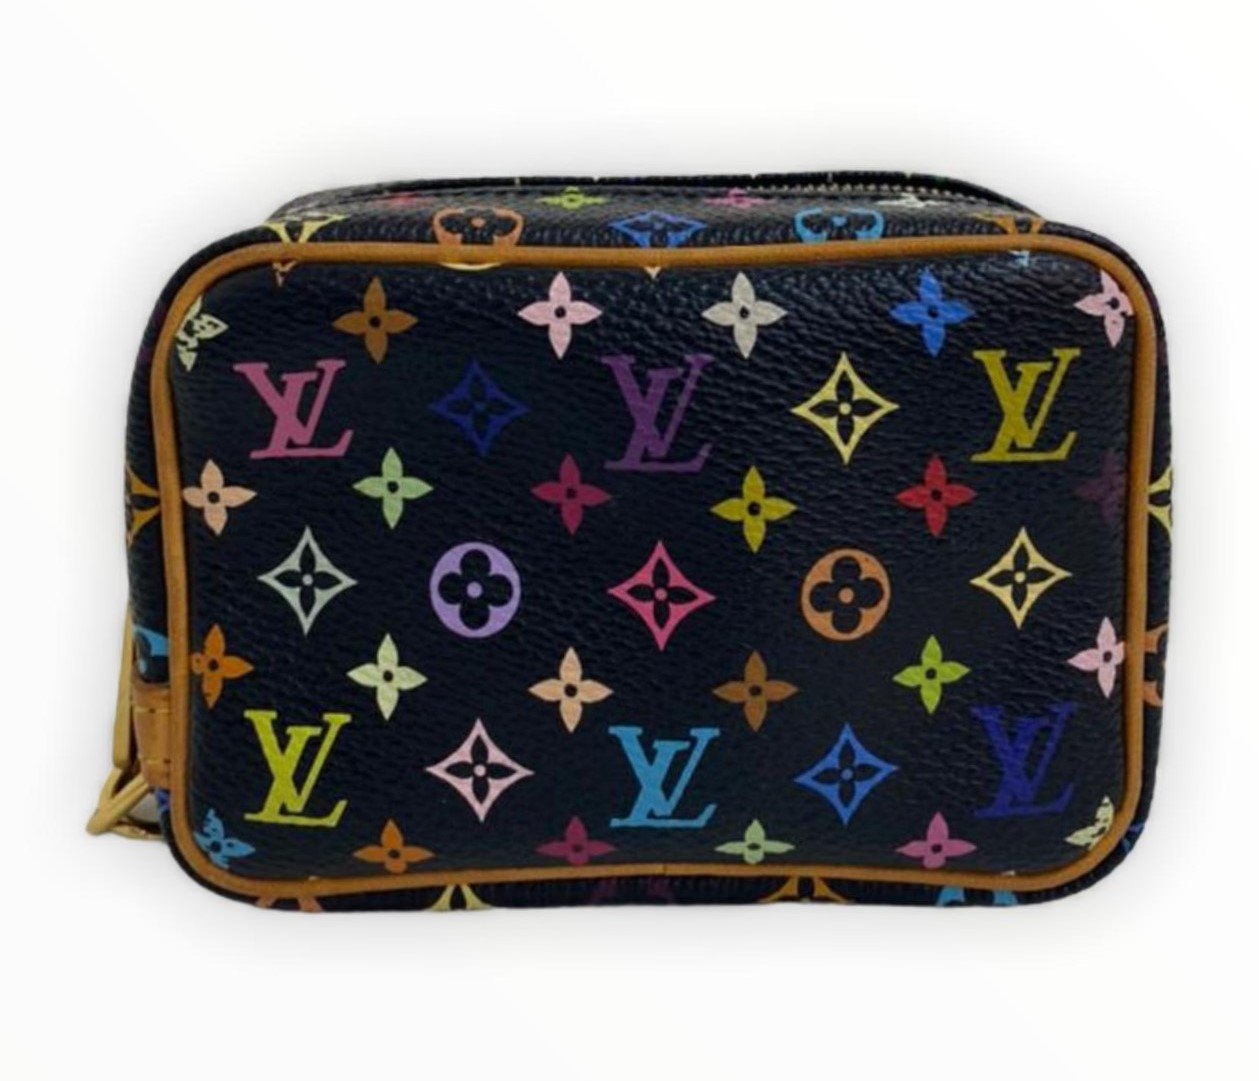 Porta-Moedas Louis Vuitton Wapity Monogram Multicolor